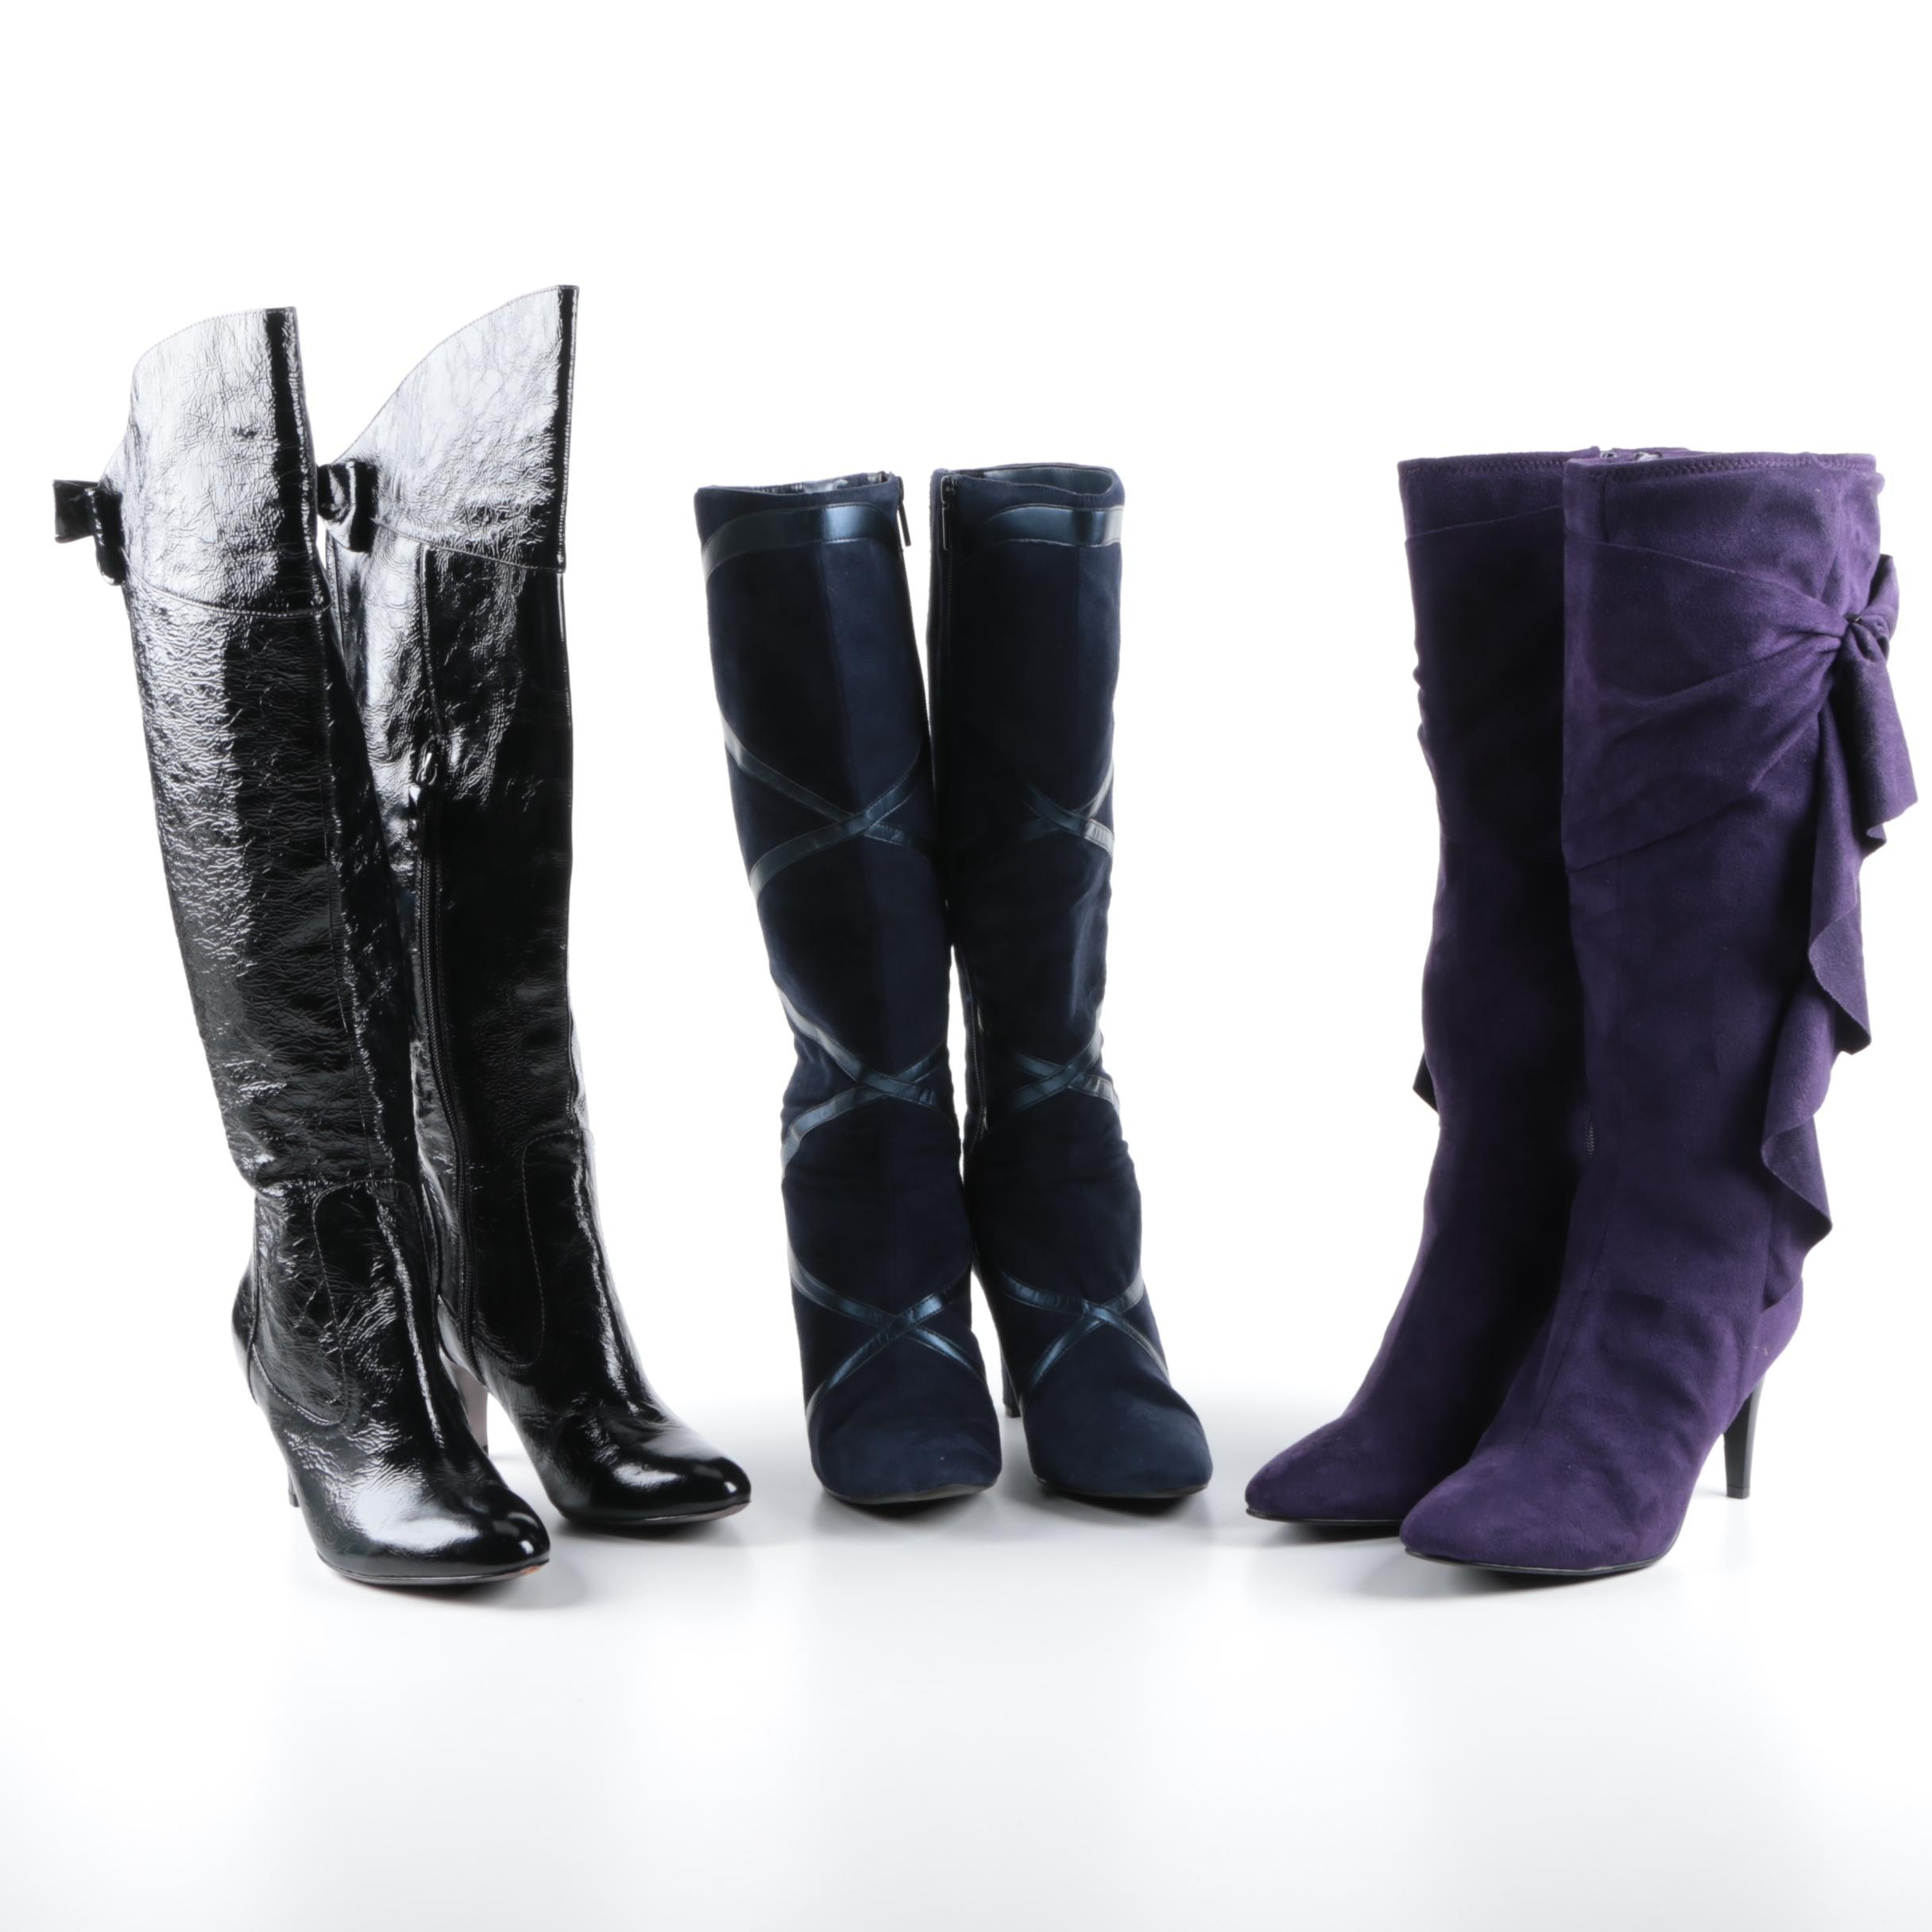 Women's High-Heeled Boots Including Isola